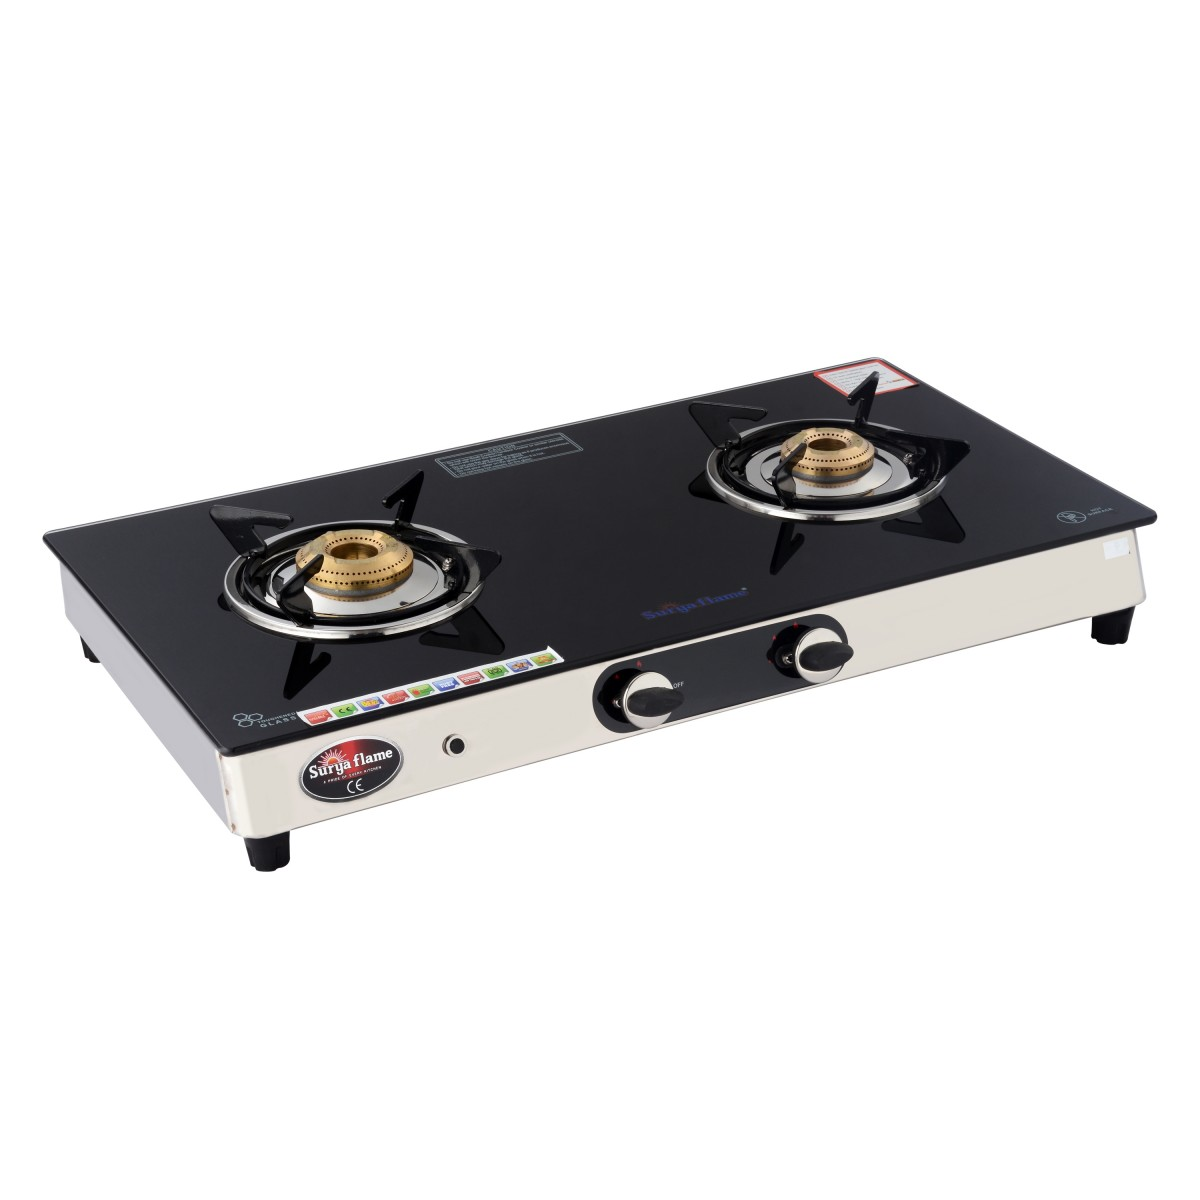 0d5bace490d 2 burner stainless steel gas stove